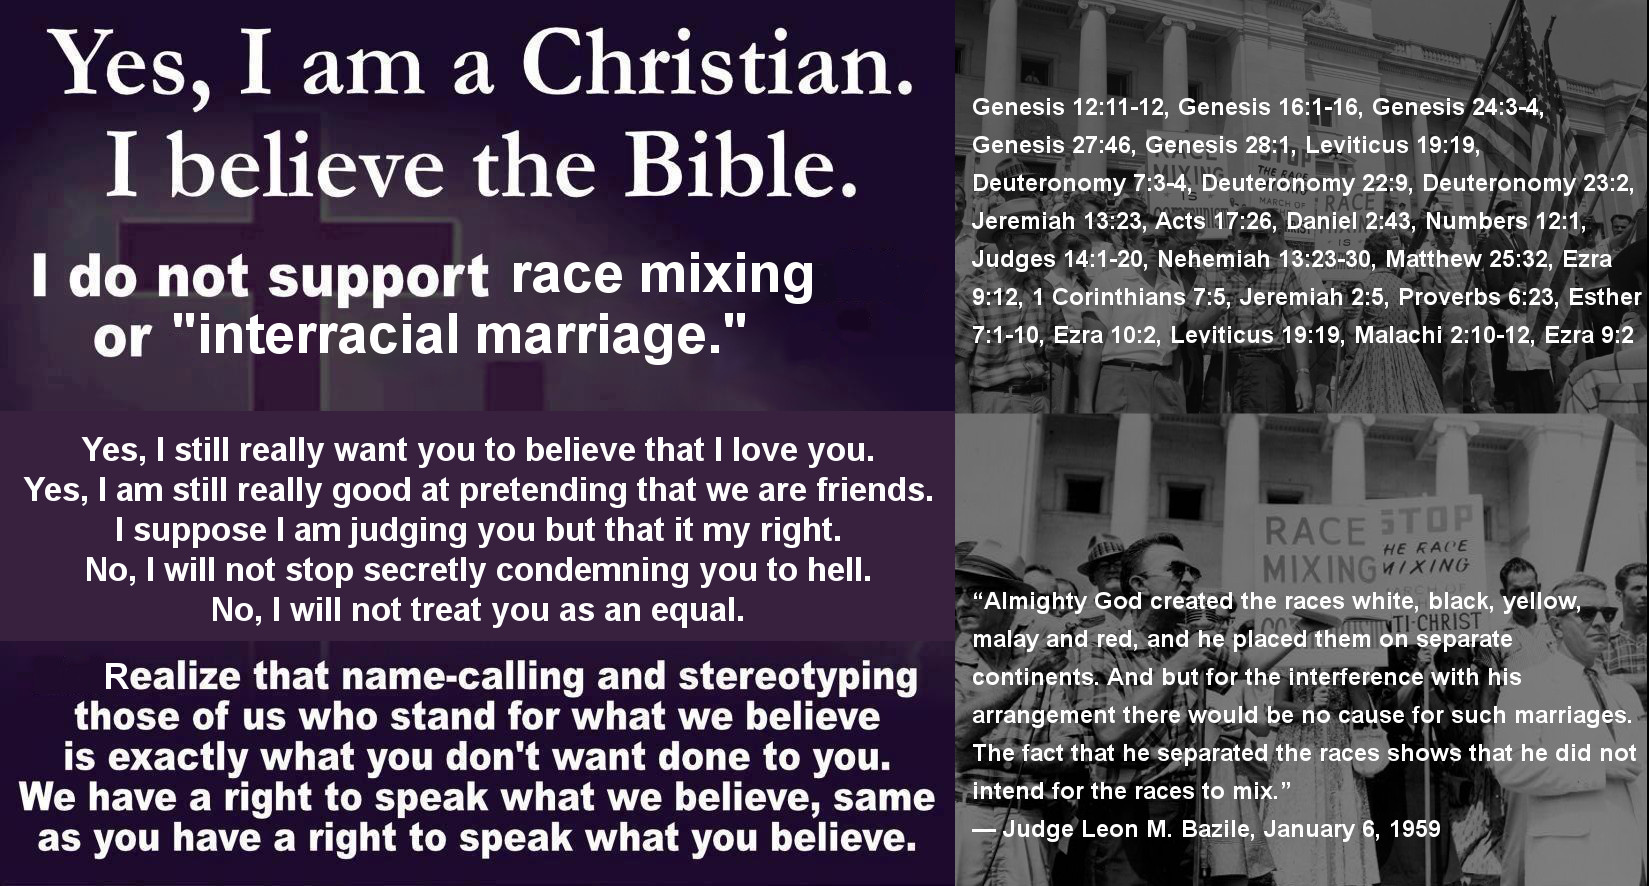 honest christian meme - i am a christian, i believe in the bible - 1967 interracial marriage